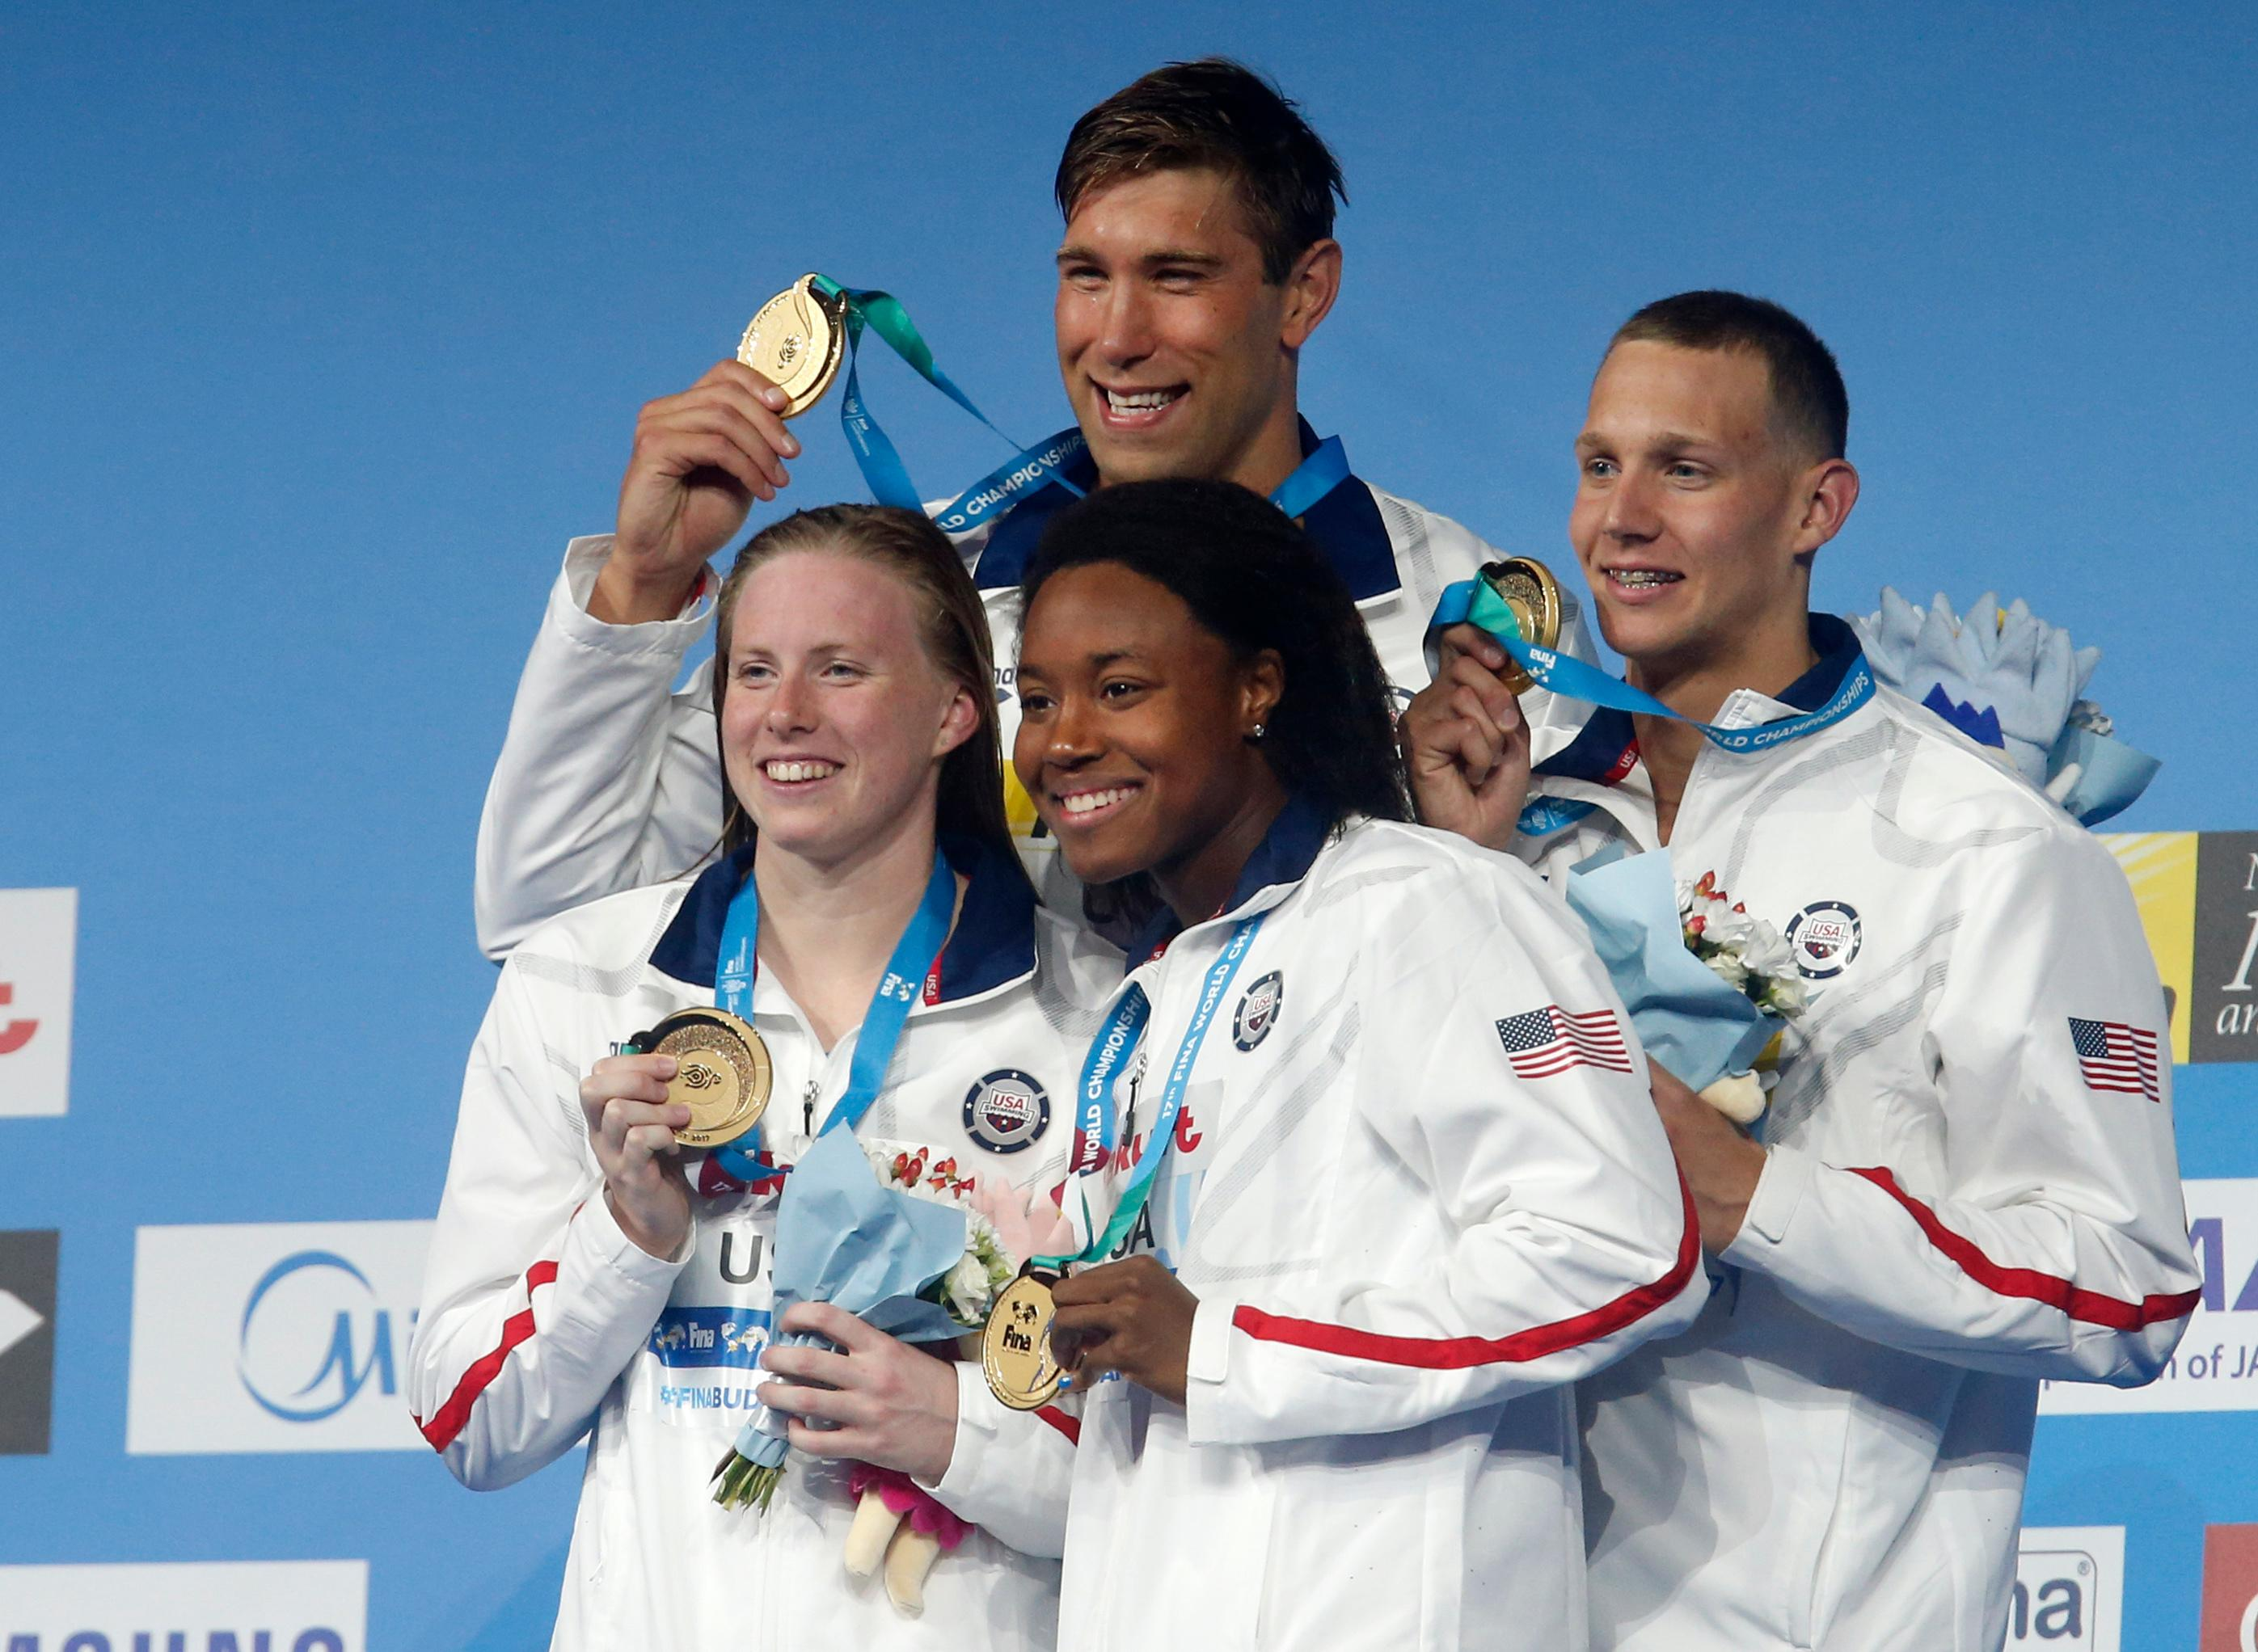 United States' Lilly King, Matt Grevers, Simone Manuel and Caeleb Dressel, from left, pose with their gold medals in the mixed medley relay during the swimming competitions of the World Aquatics Championships in Budapest, Hungary, Wednesday, July 26, 2017.. (AP Photo/Darko Bandic)